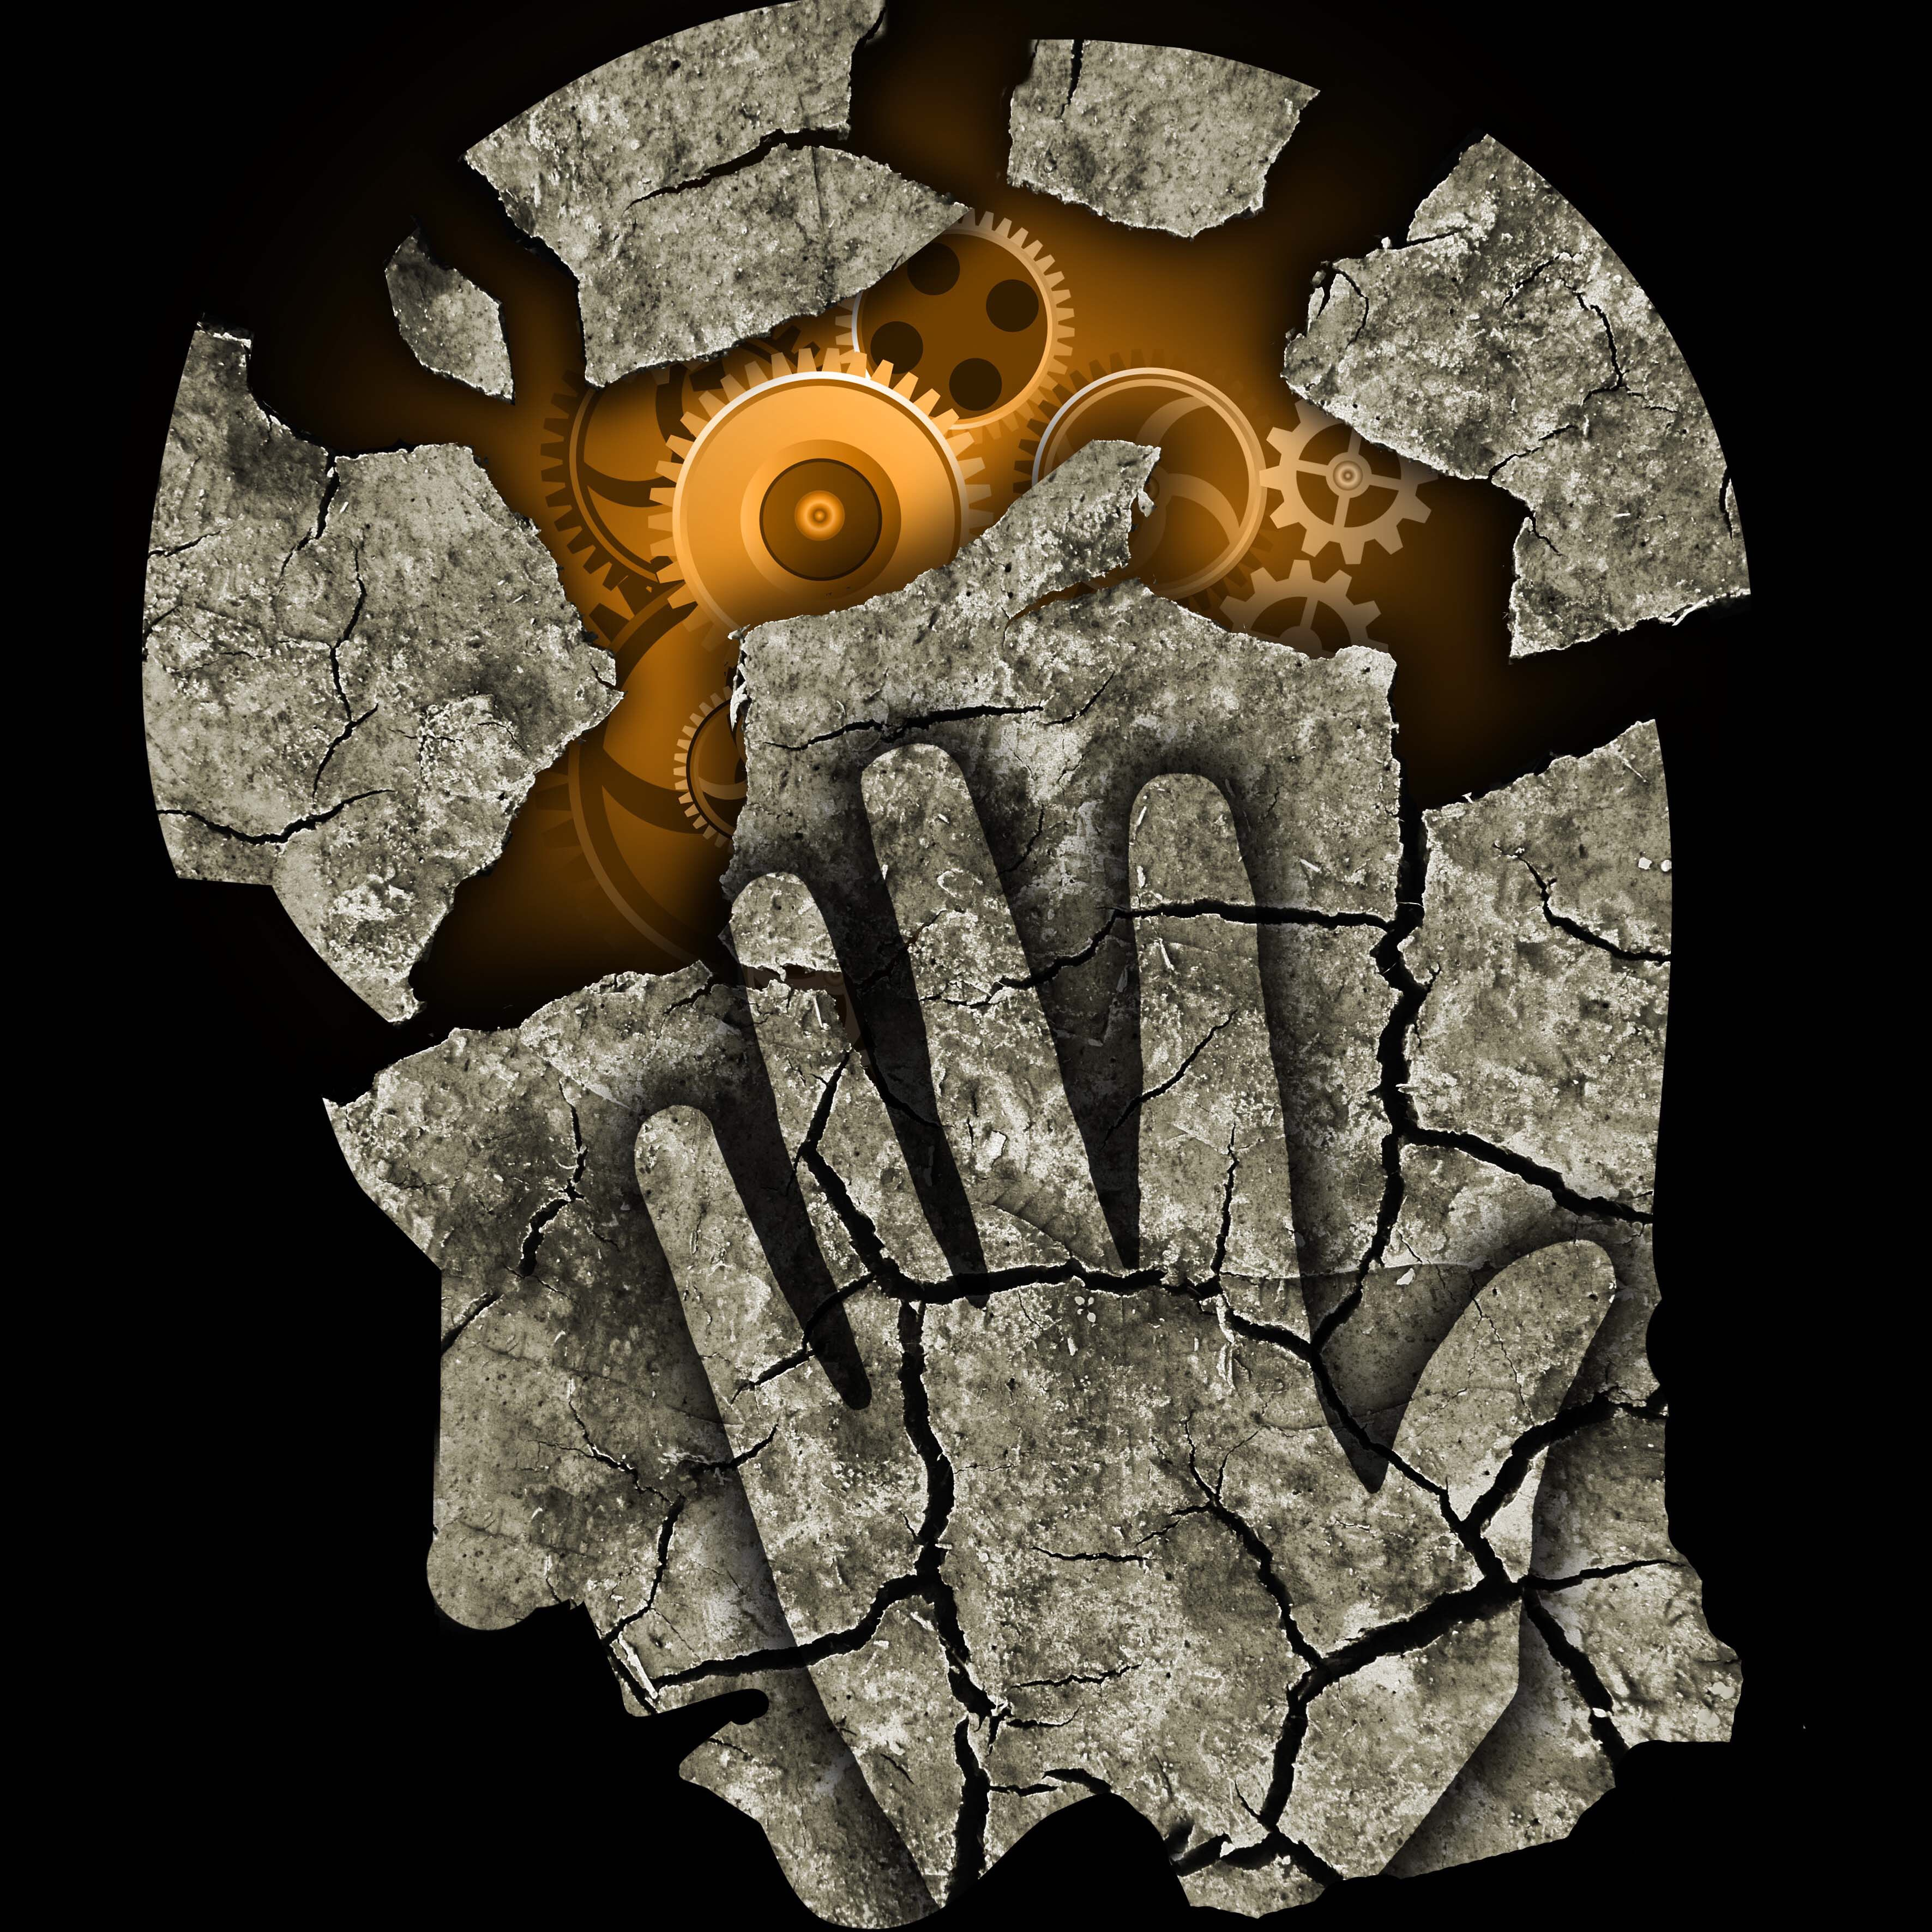 Stone brain breaking apart with cogs inside